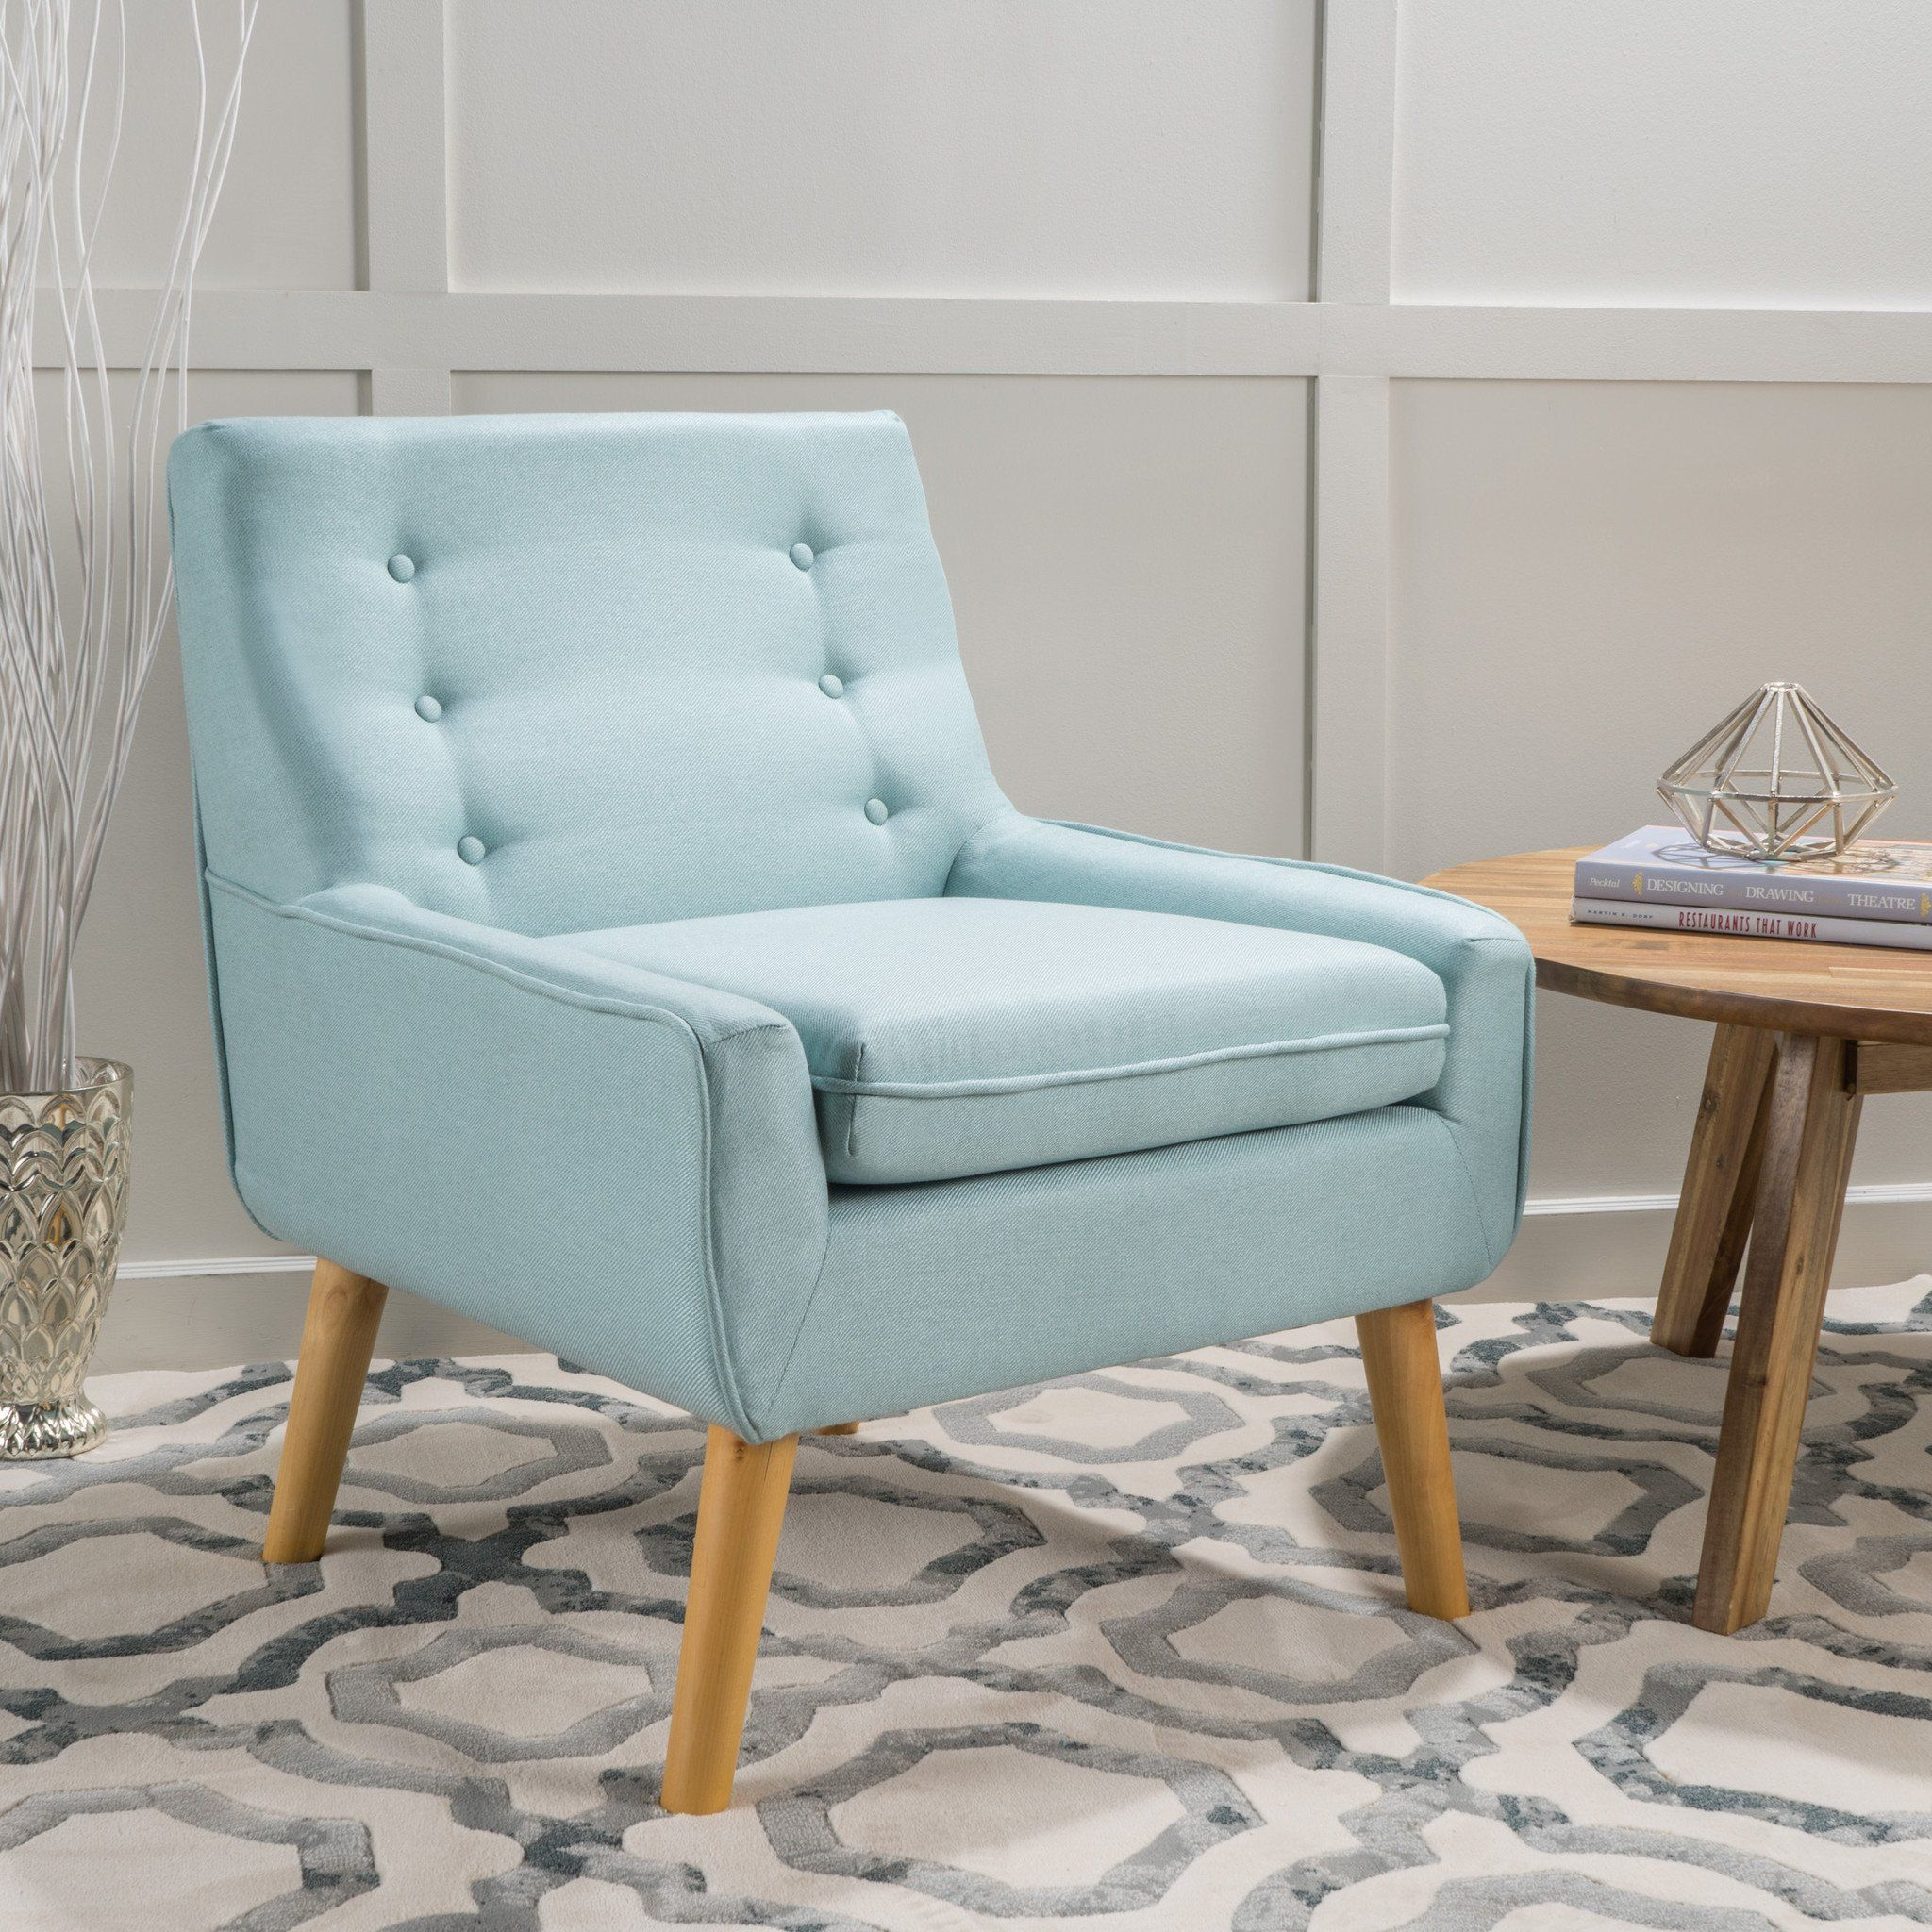 Best Brockston Mid Century Modern Accent Chair With Images 400 x 300